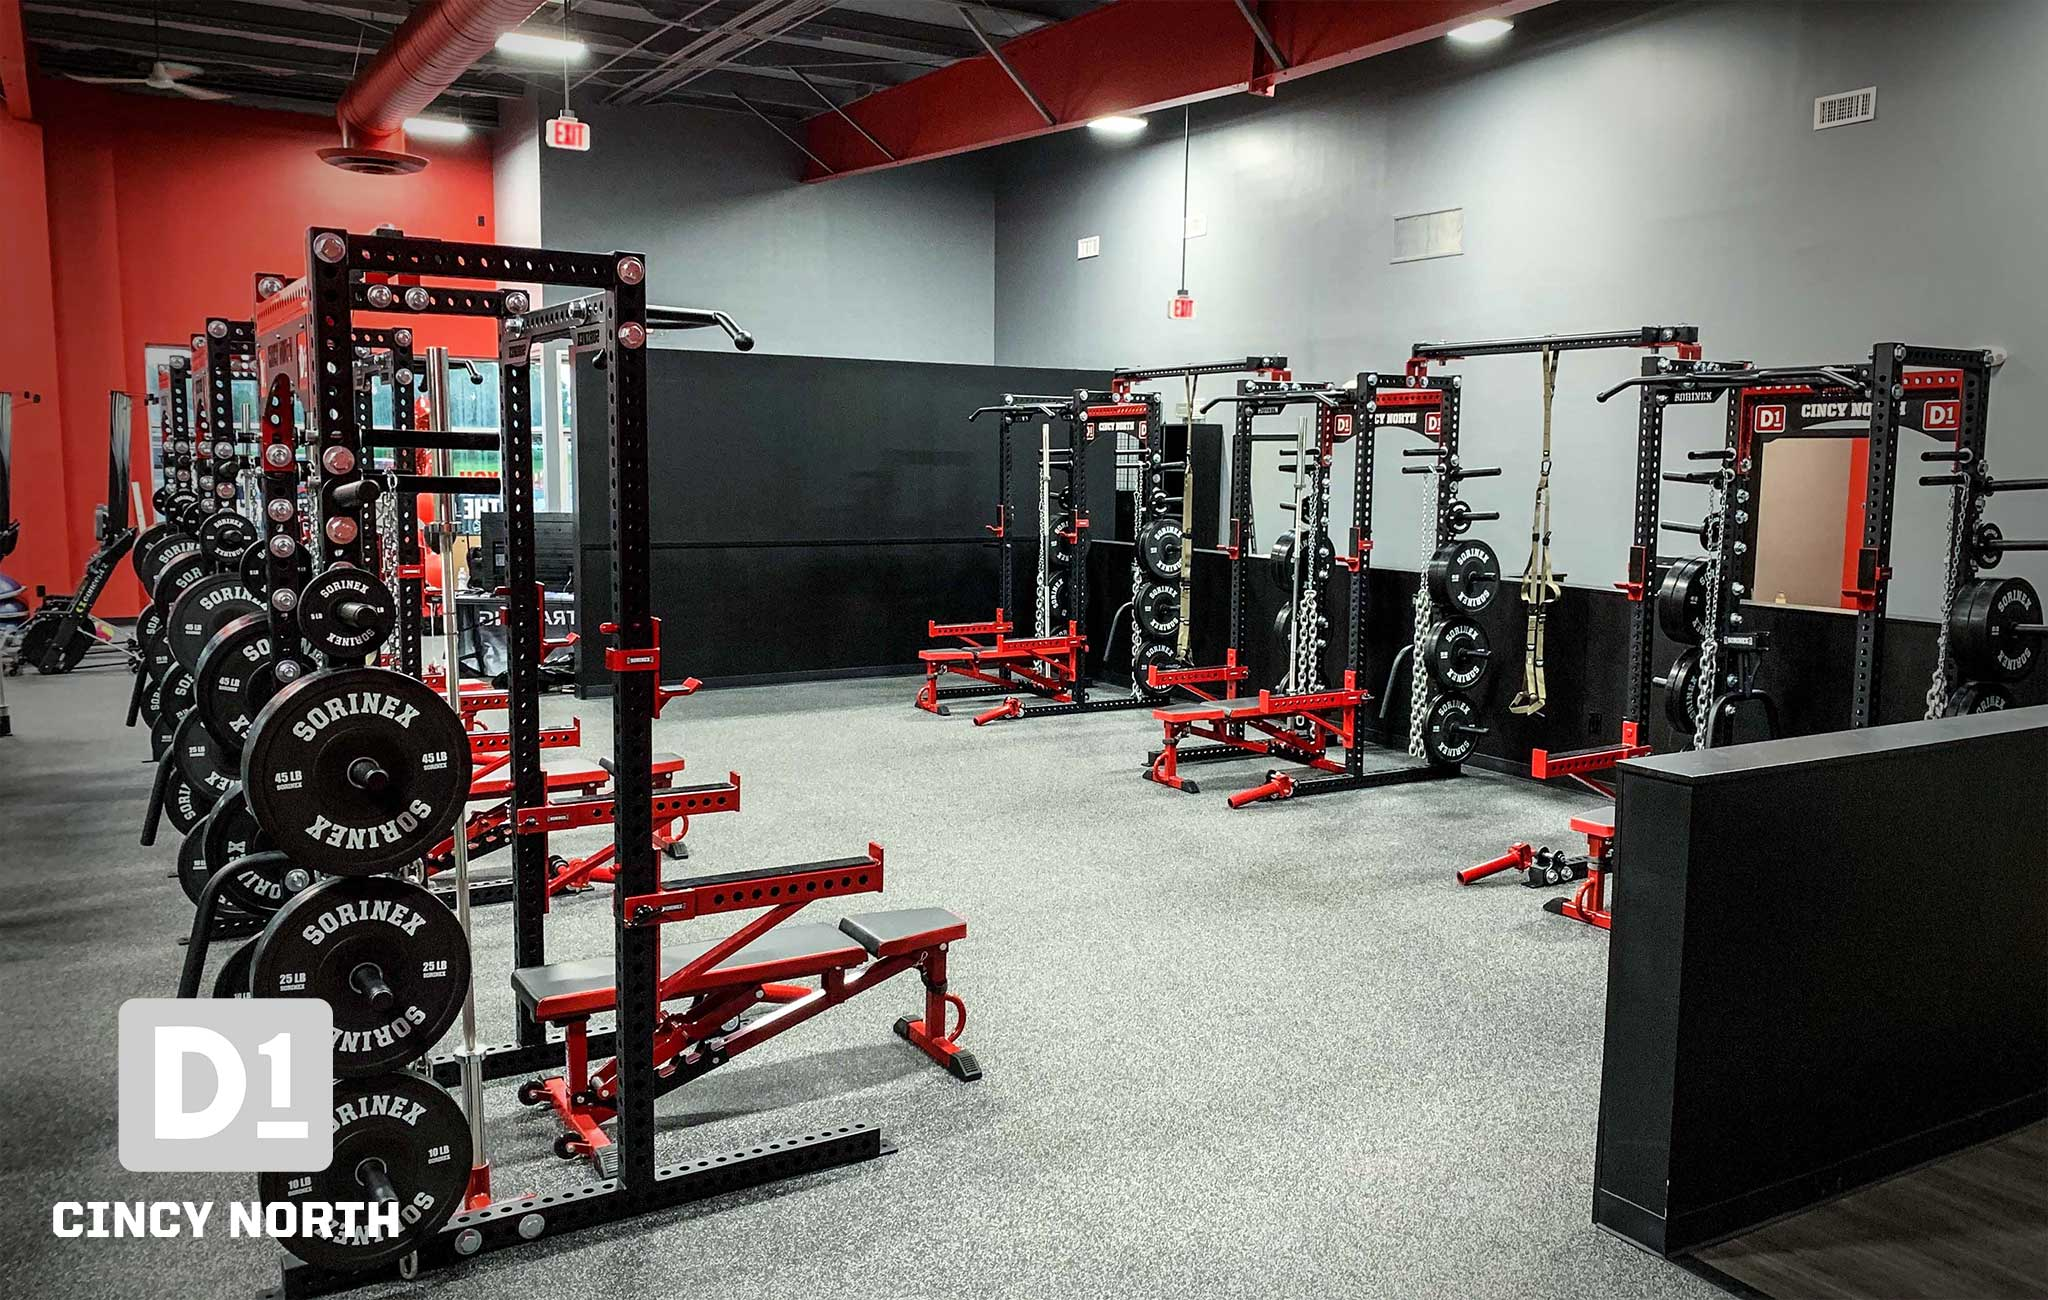 D1 Private Training facility Sorinex